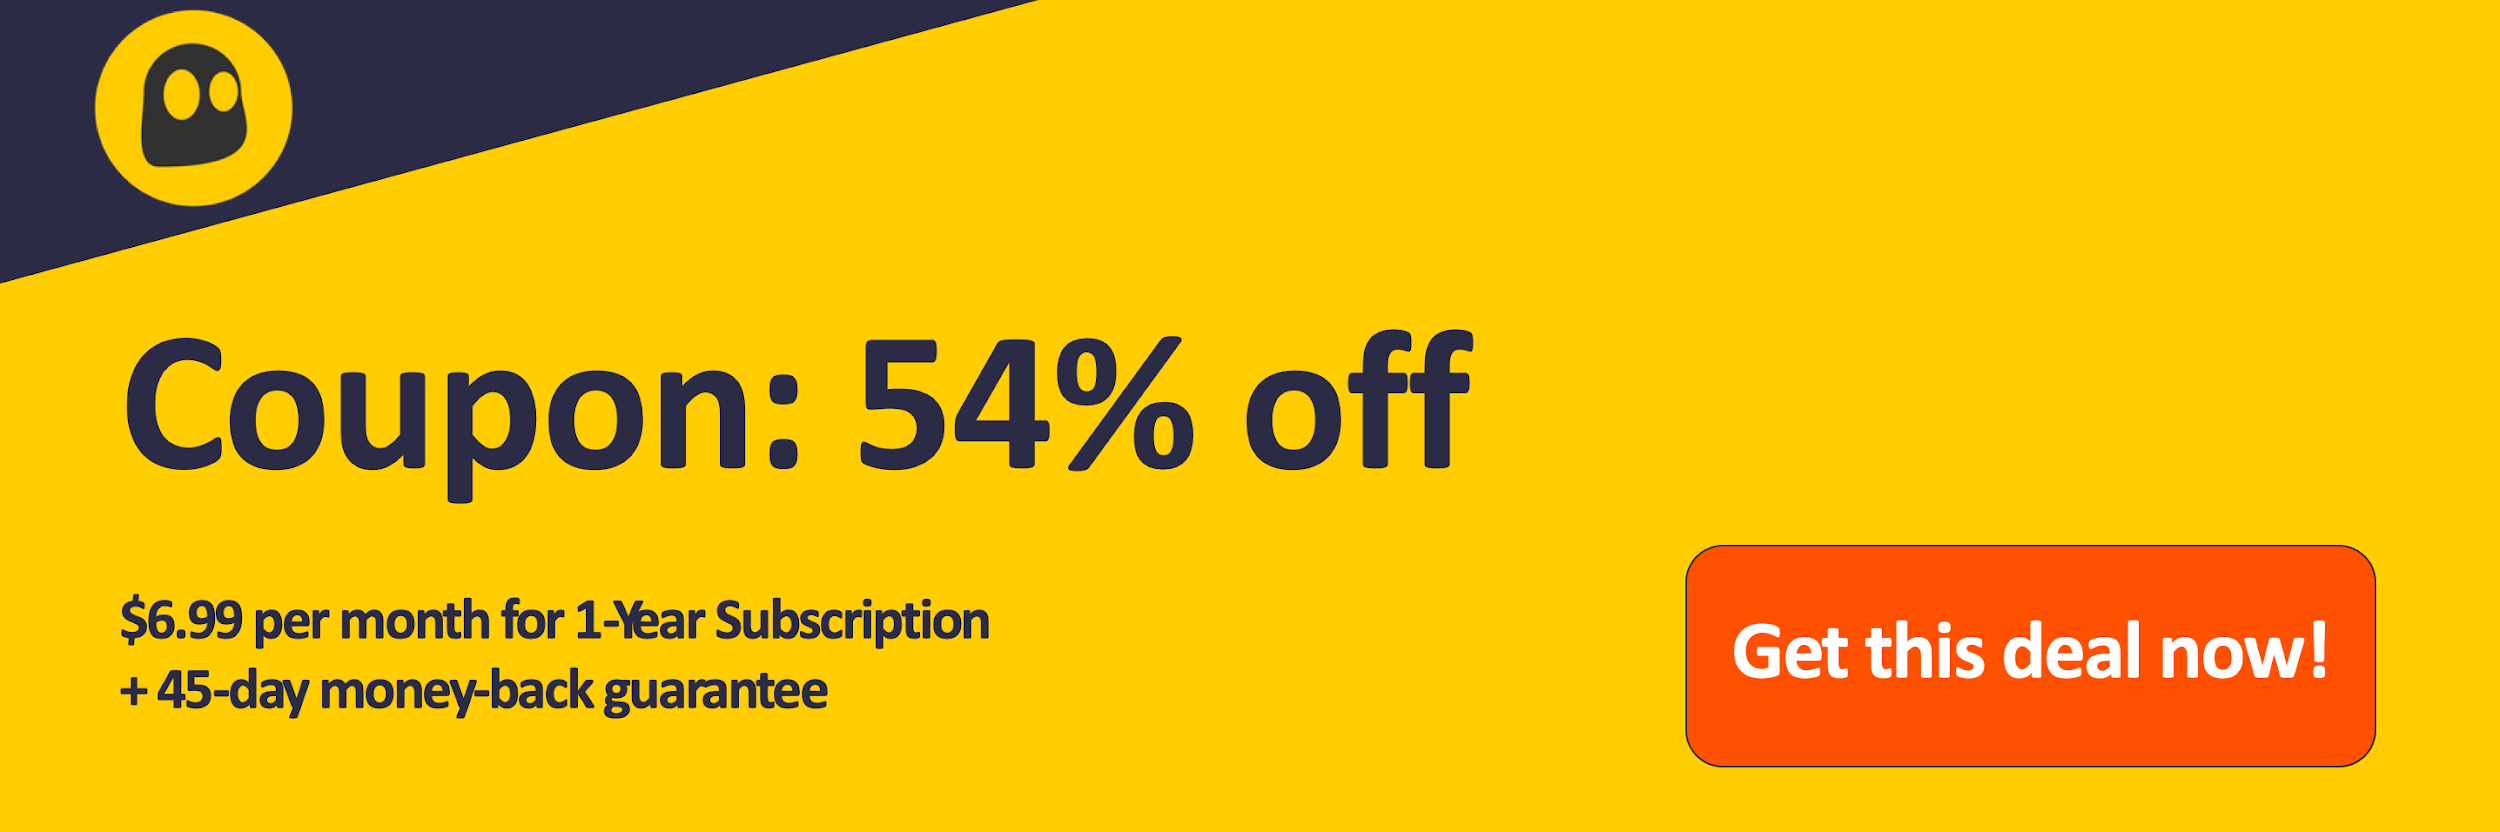 Graphic of a working CyberGhost VPN coupon offering a 54% discount which is $6.99 per month on a 1 year subscription with a 45 day money back guarantee